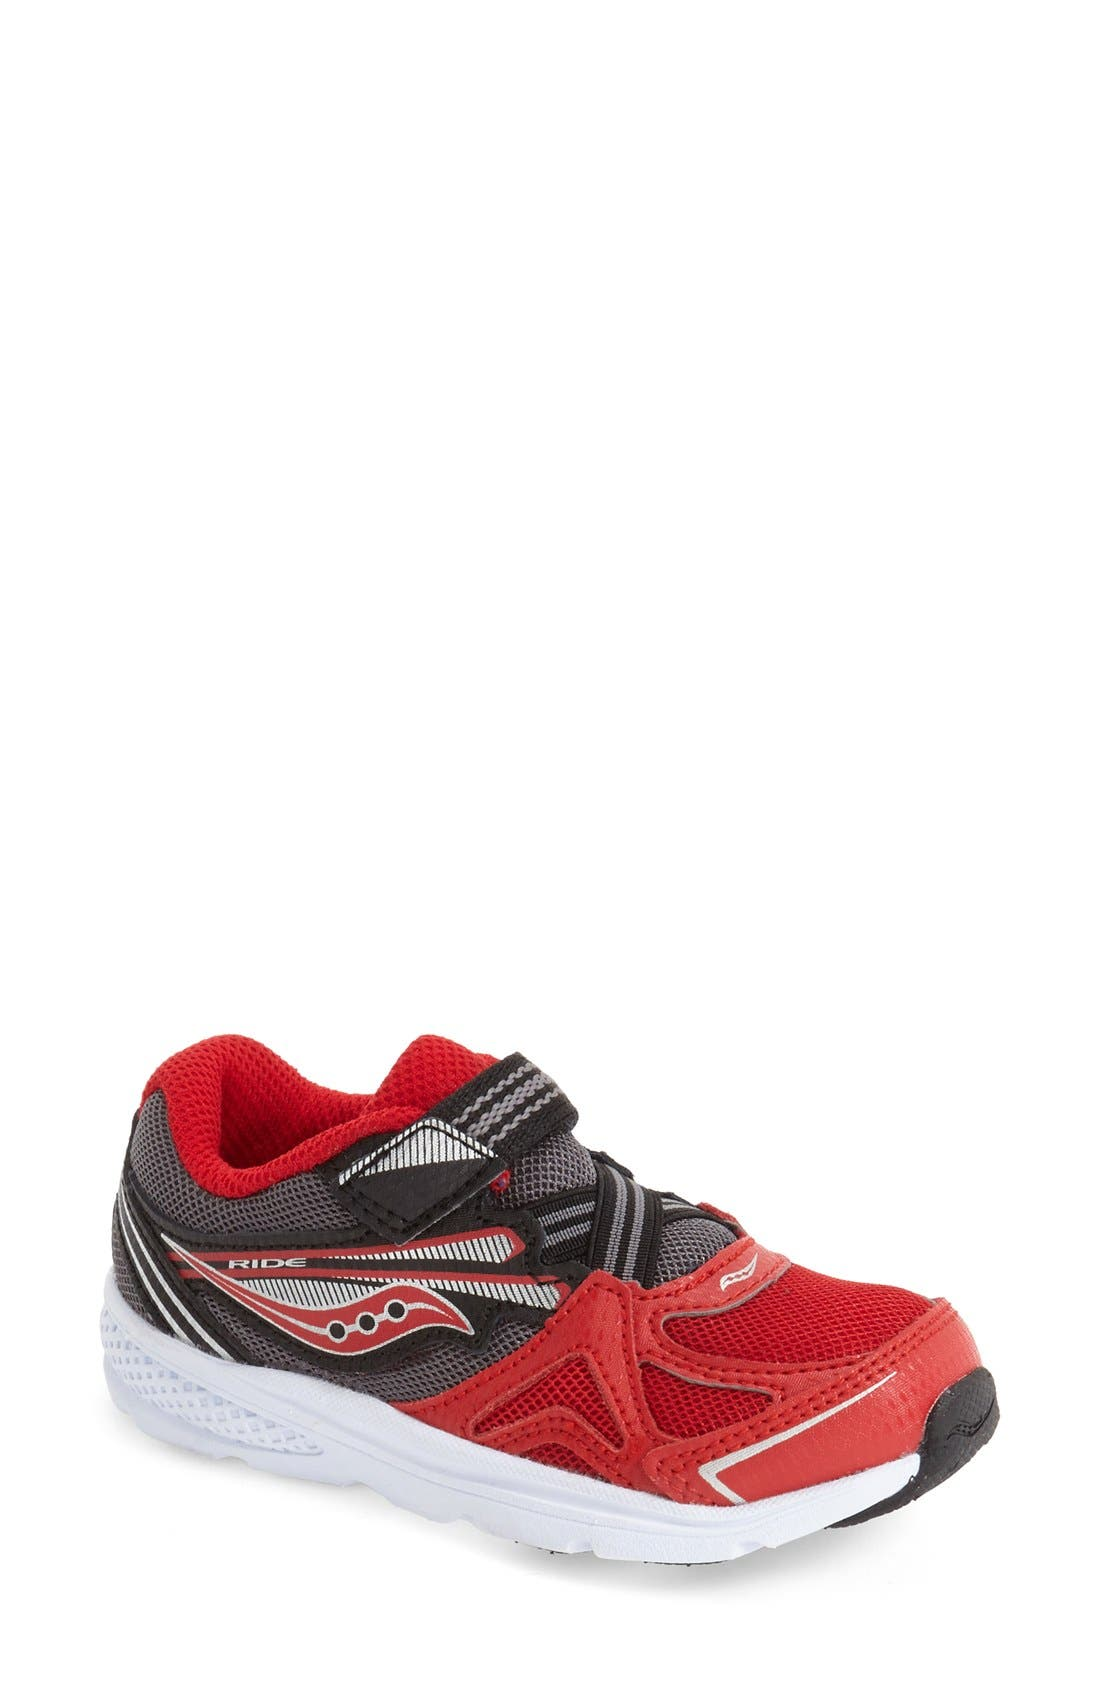 Alternate Image 1 Selected - Saucony 'Ride' Sneaker (Baby, Walker & Toddler)